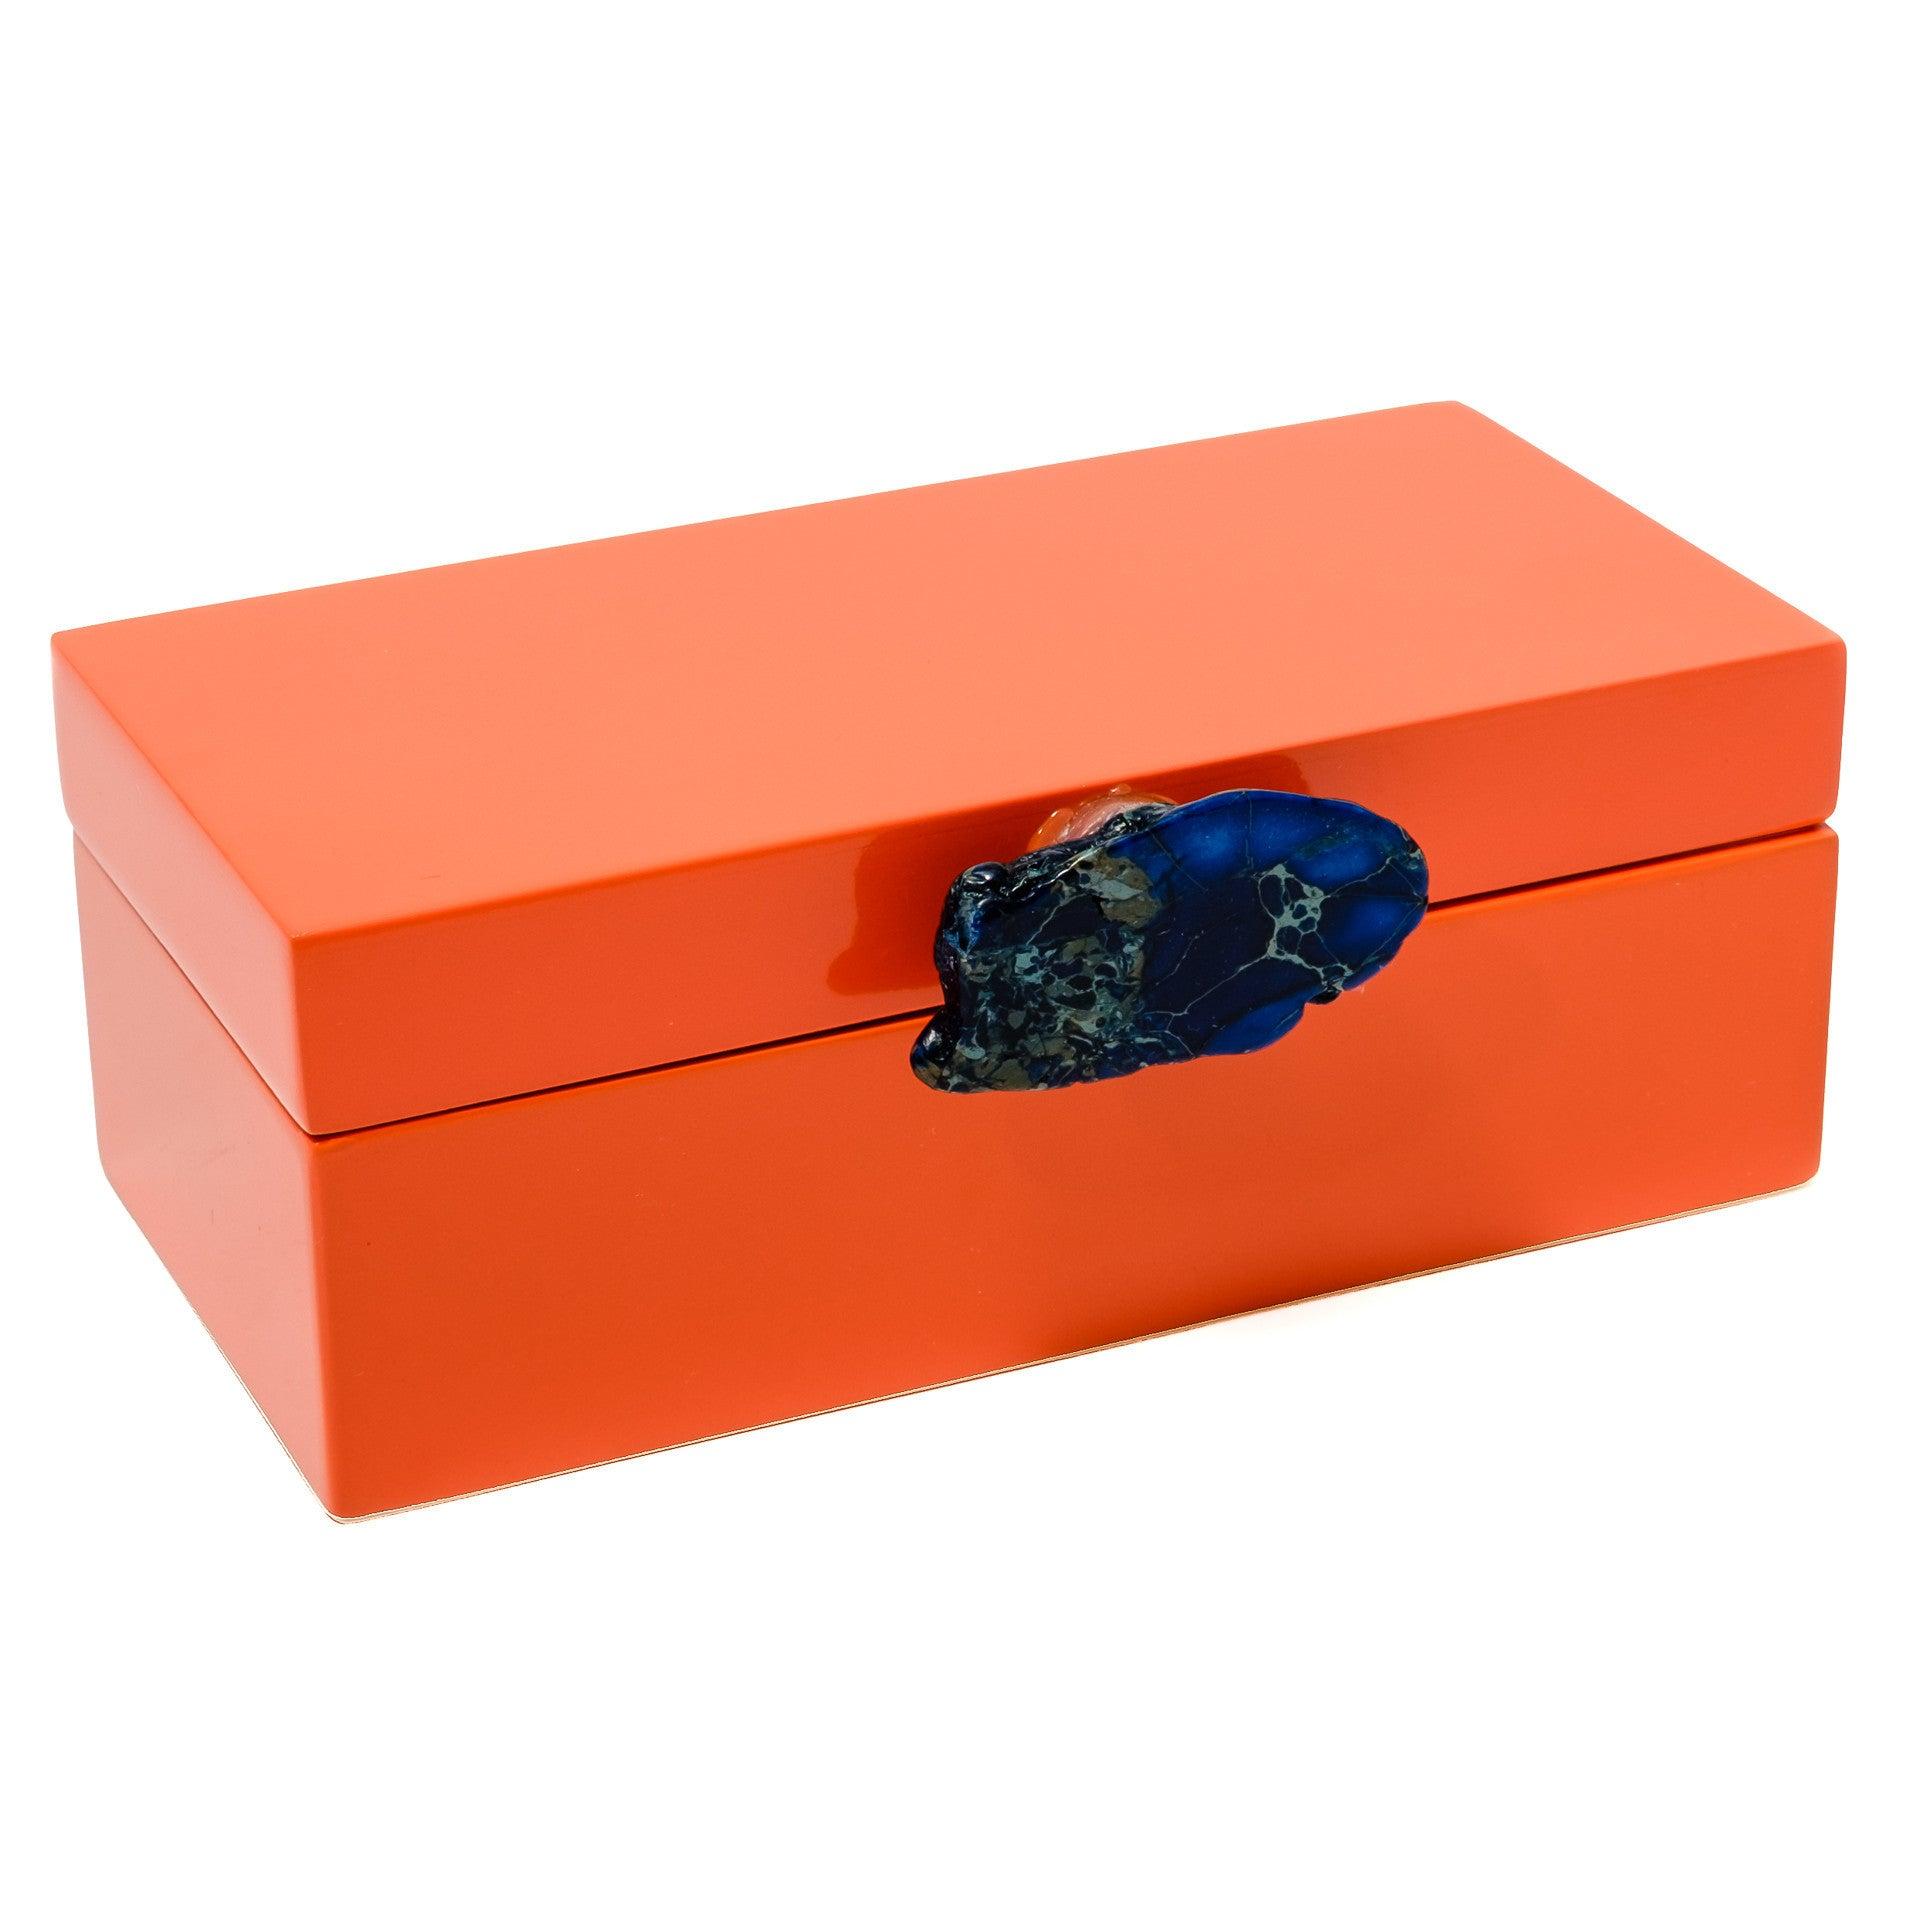 Medium Orange Lacquer Box with Blue Jasper Knob